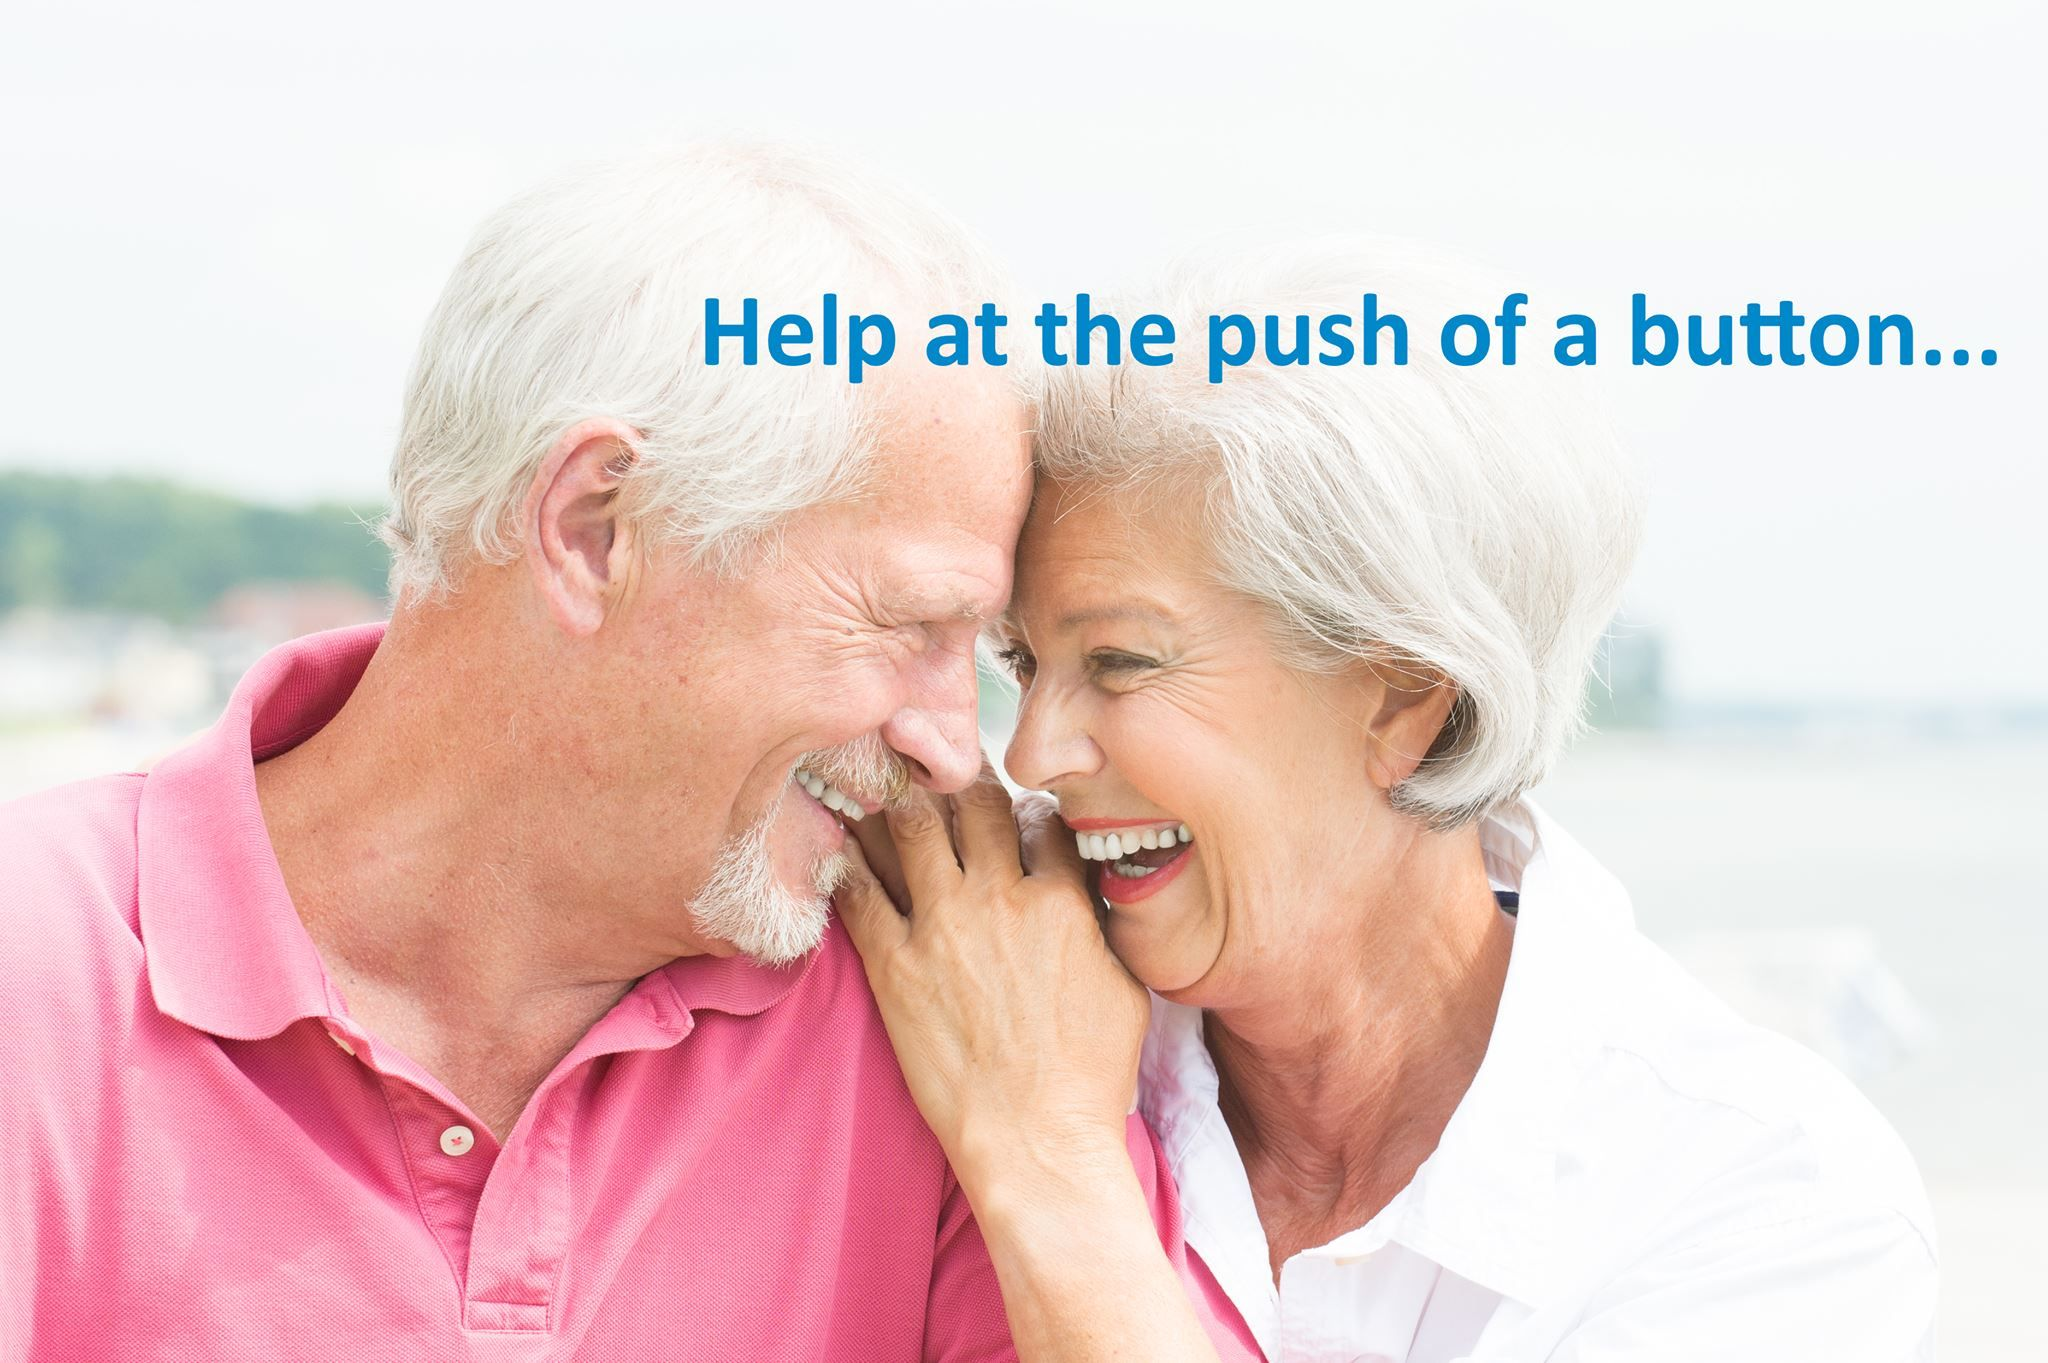 Medical alert systems benefit those who are prone to